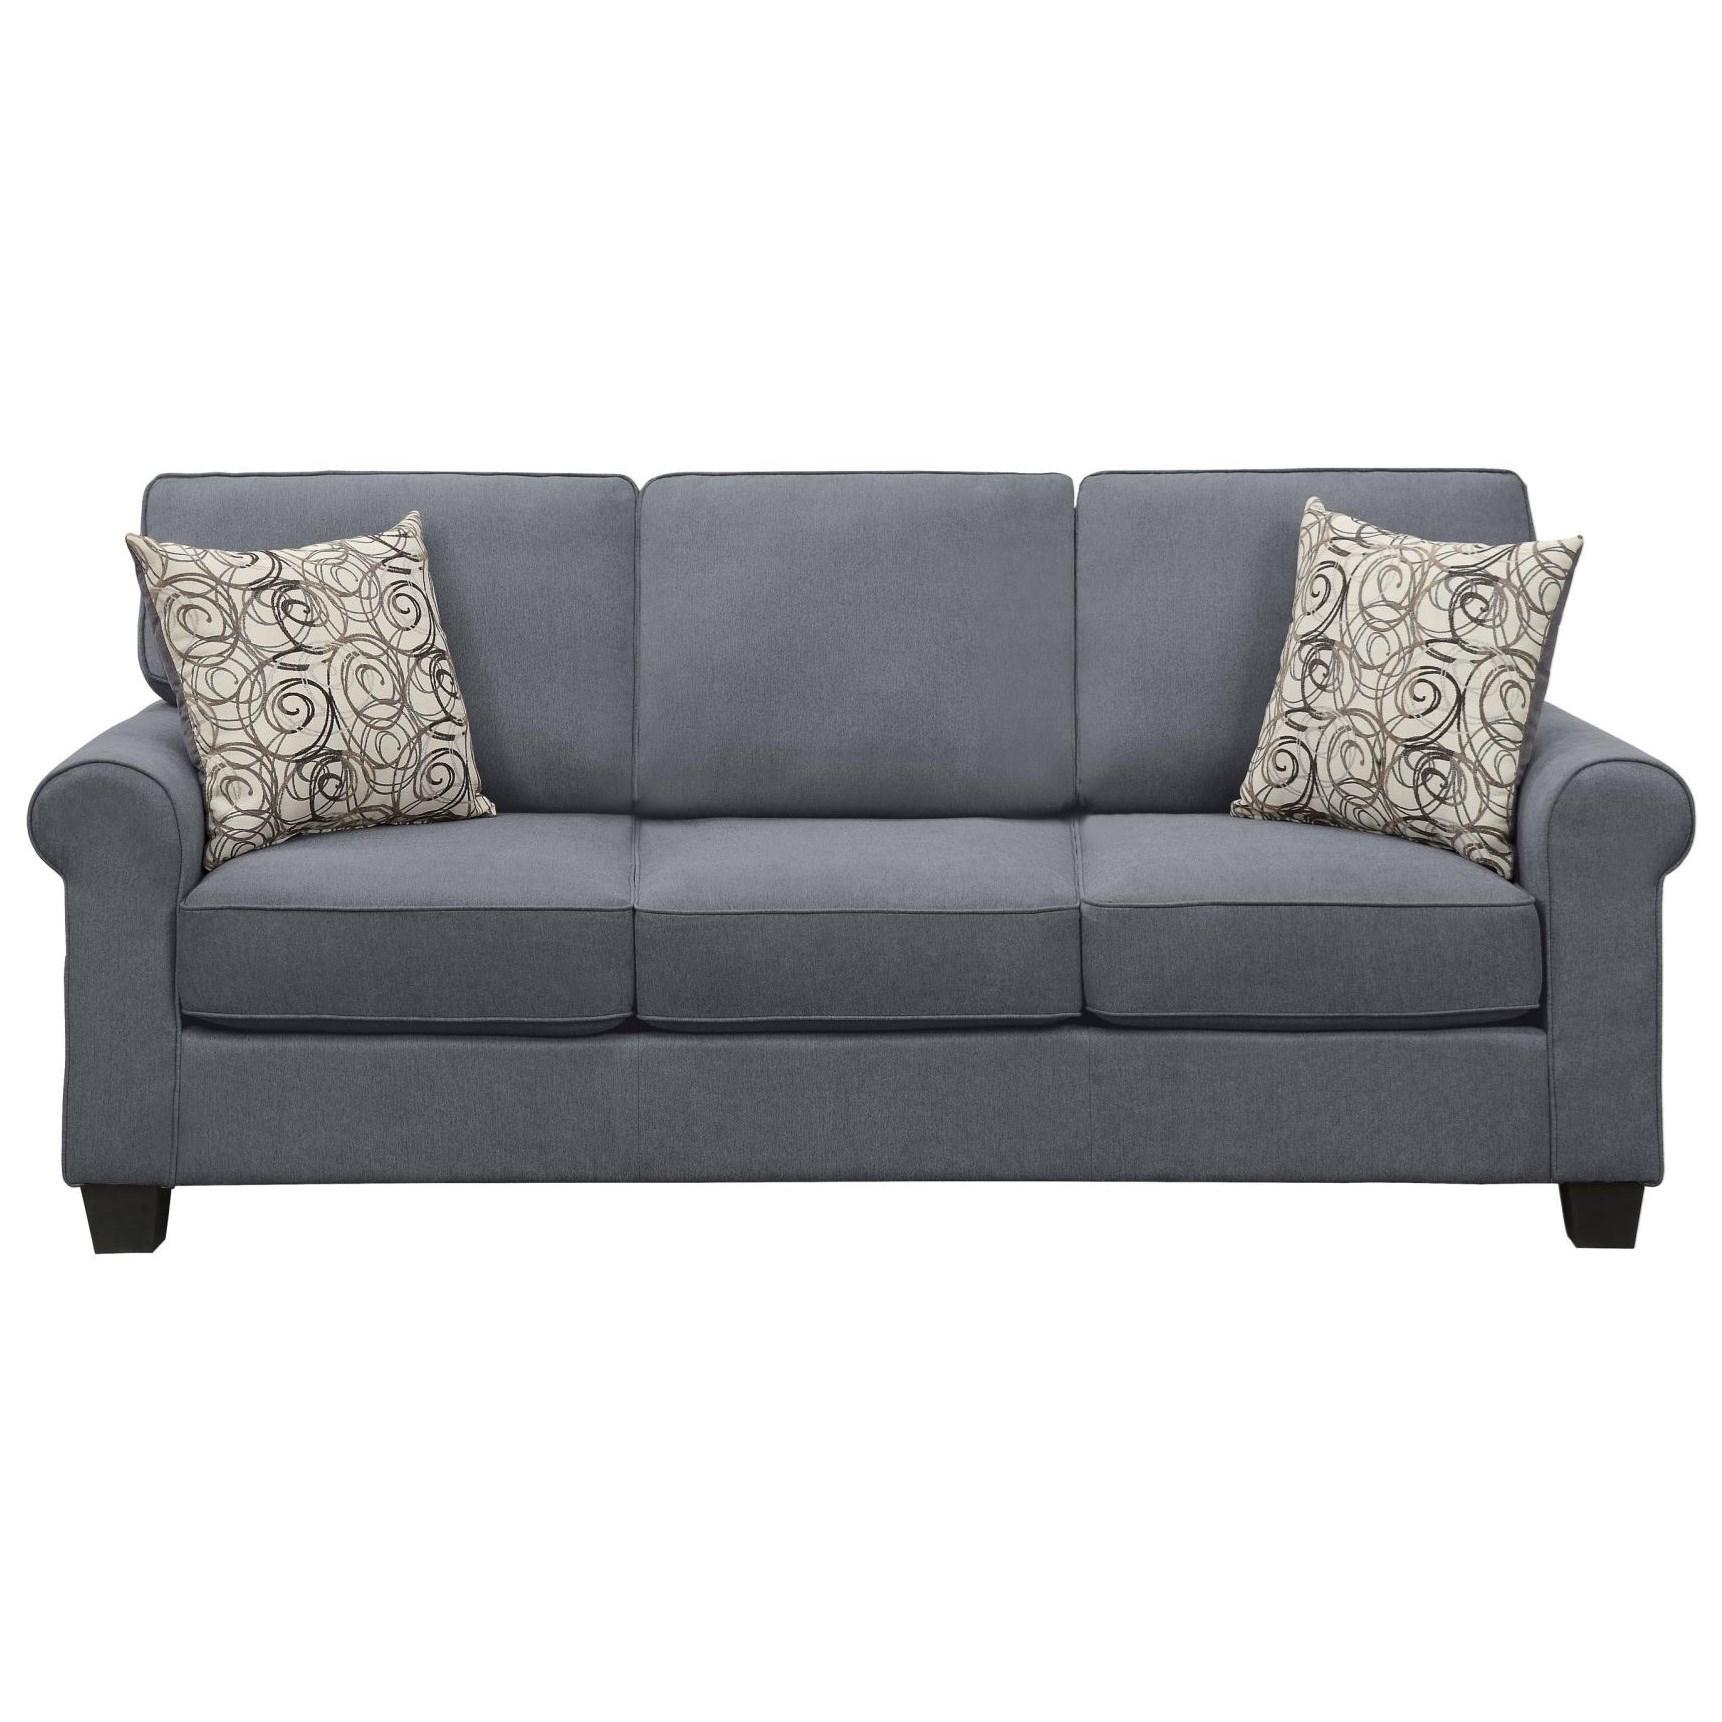 Selkirk Sofa by Homelegance at Dream Home Interiors